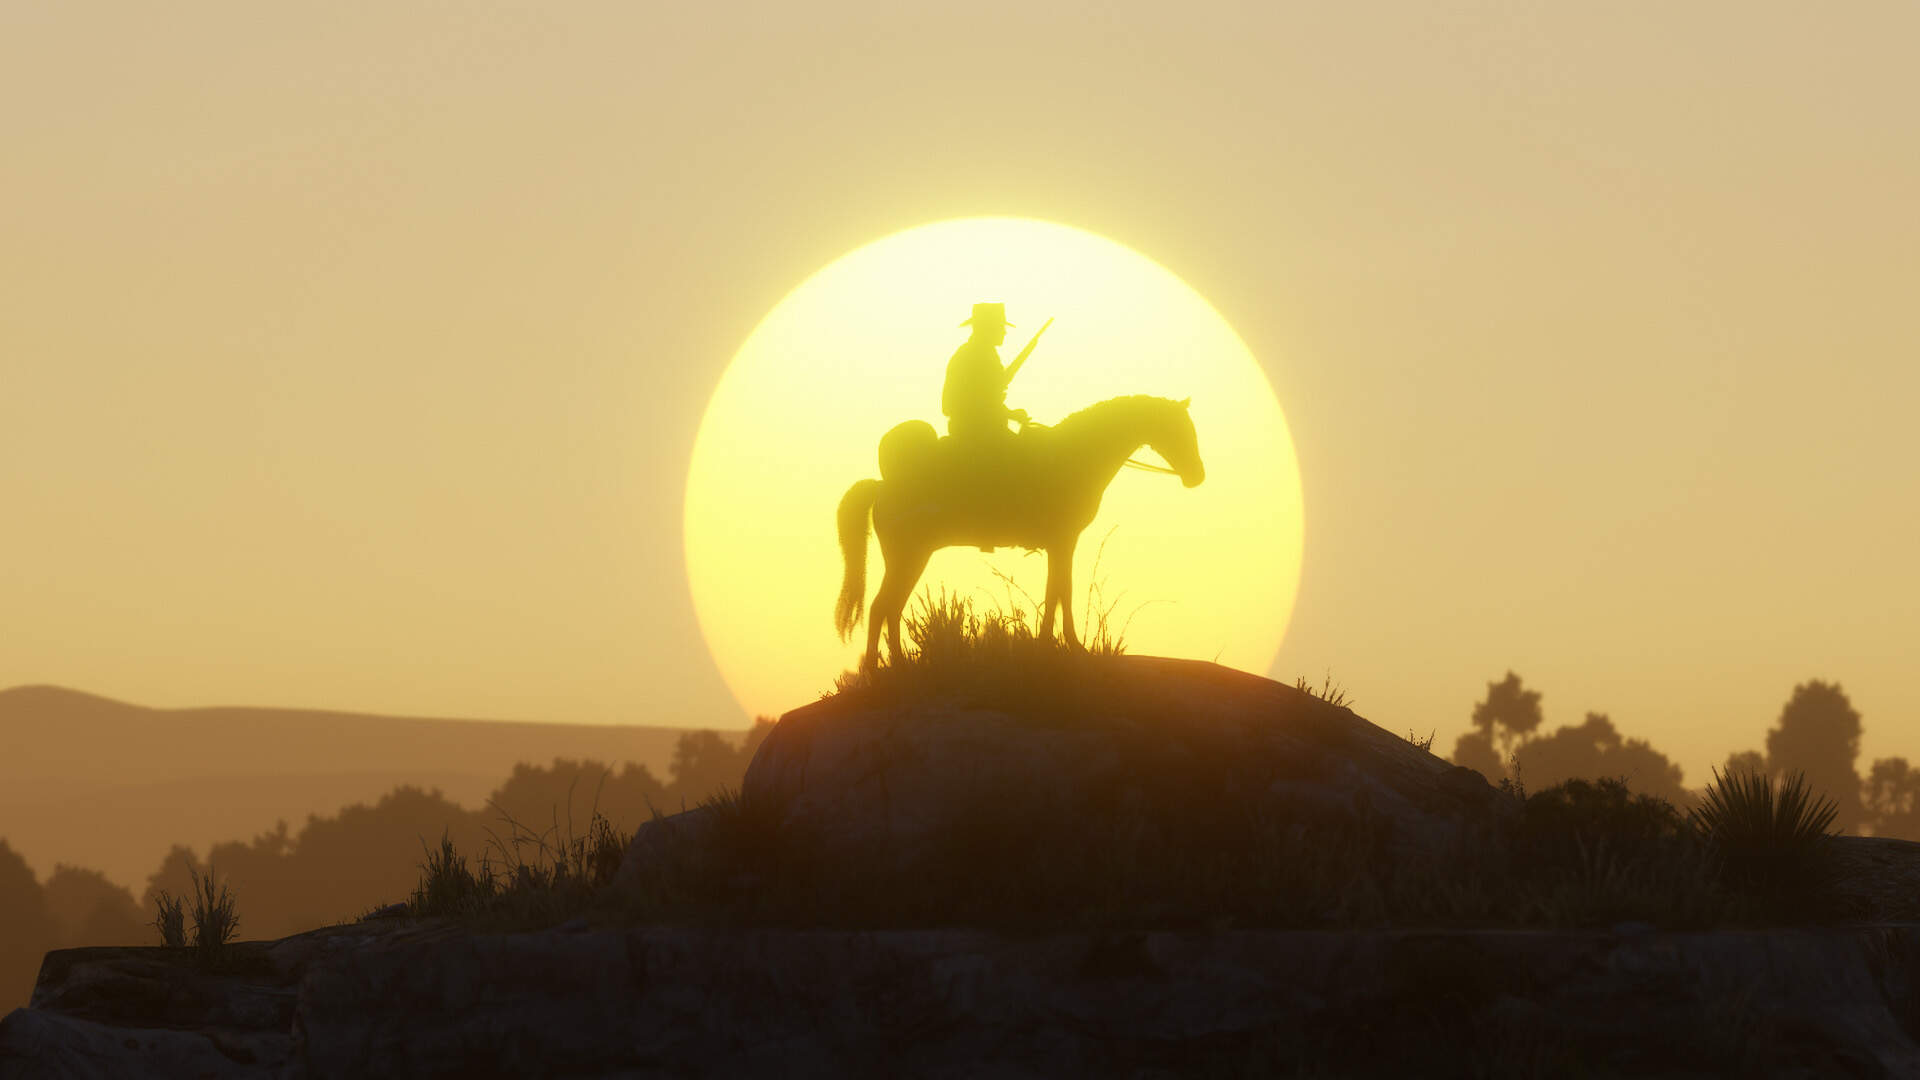 Red Dead Redemption 2's Frame Rate and Resolution Come Up Short on Stadia